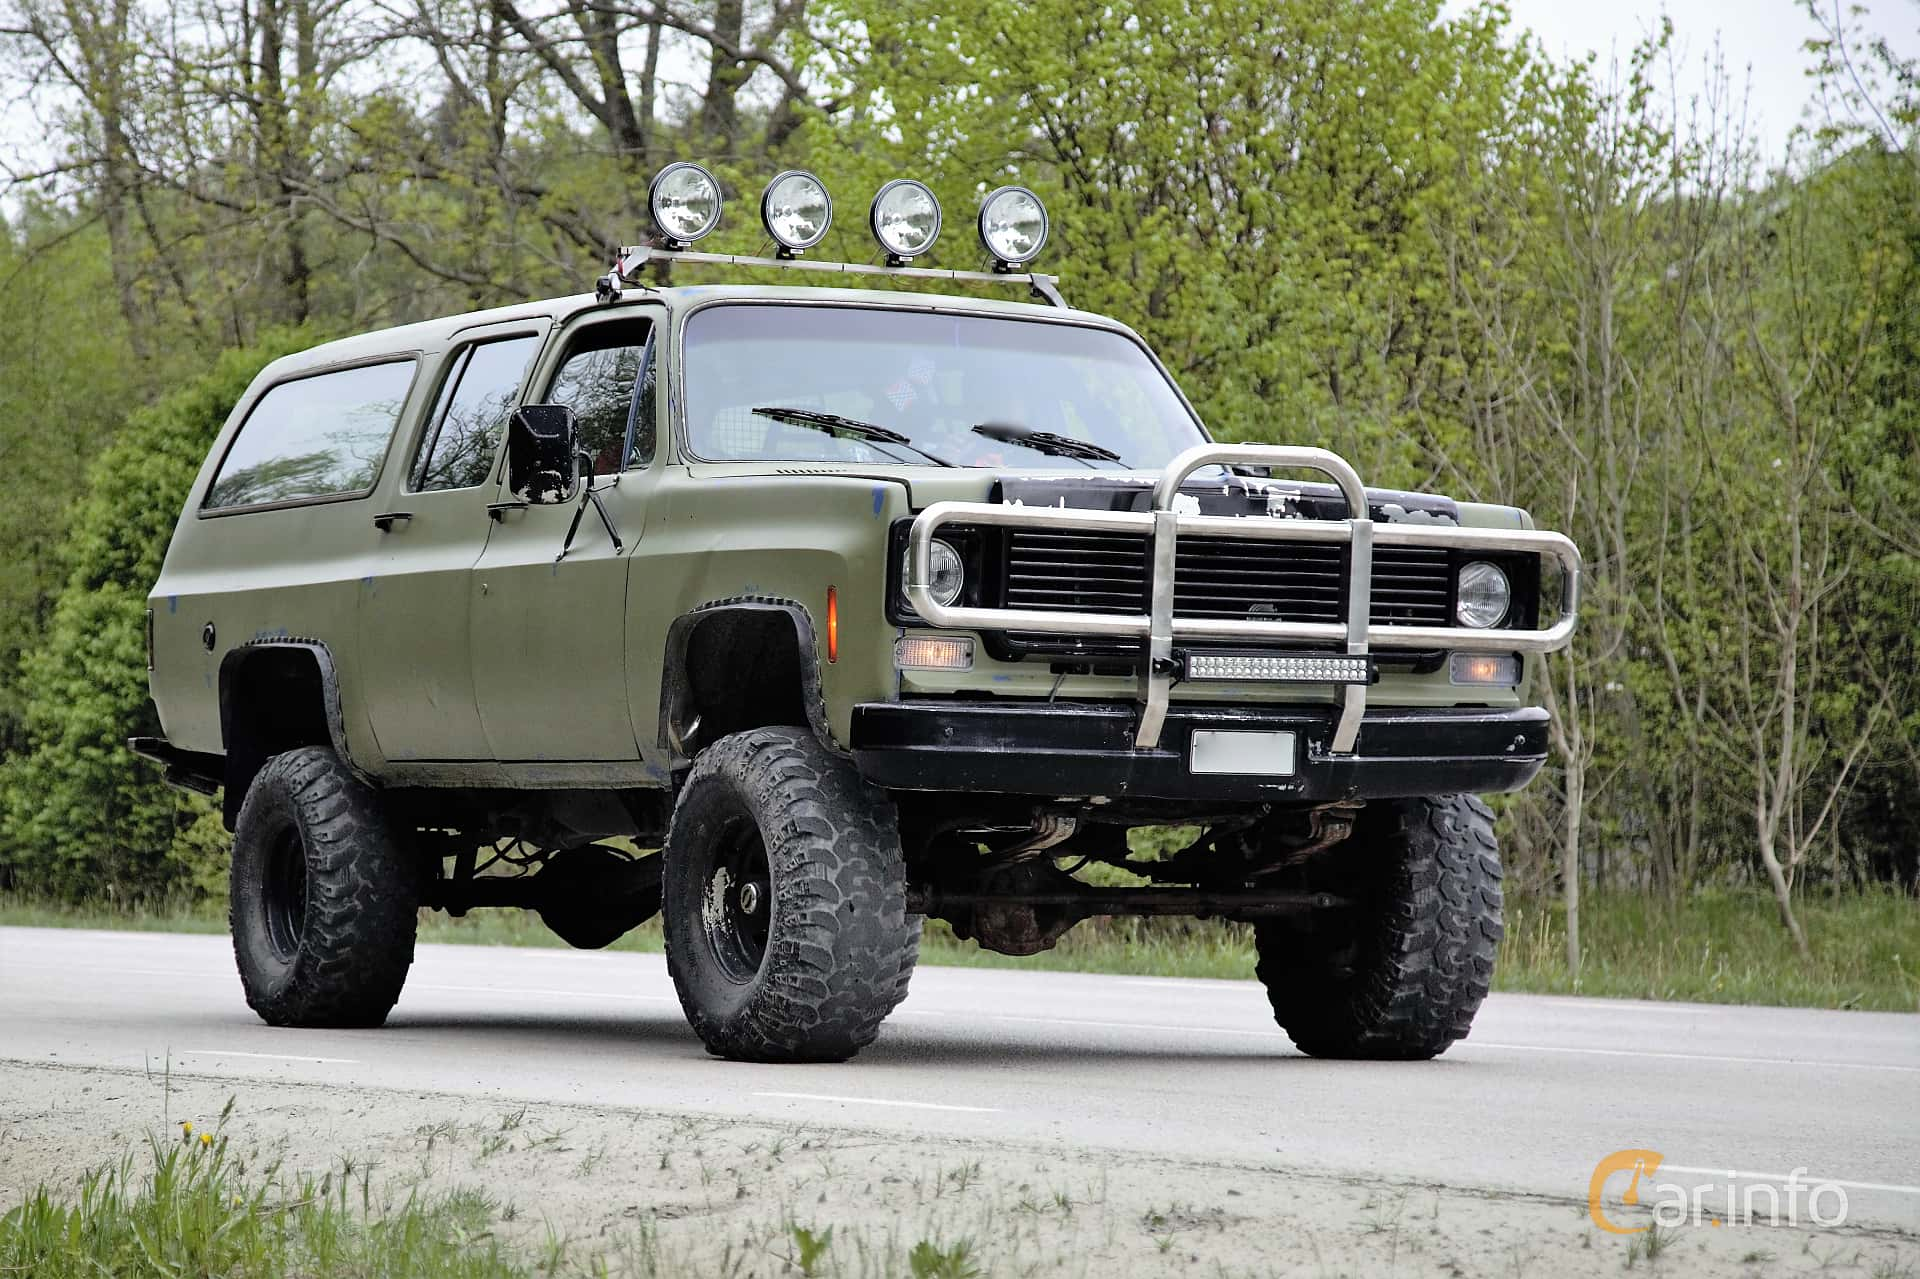 1 images of Chevrolet K20 Suburban 5.7 V8 4WD Hydra-Matic, 167hp, 1977 by  Espee